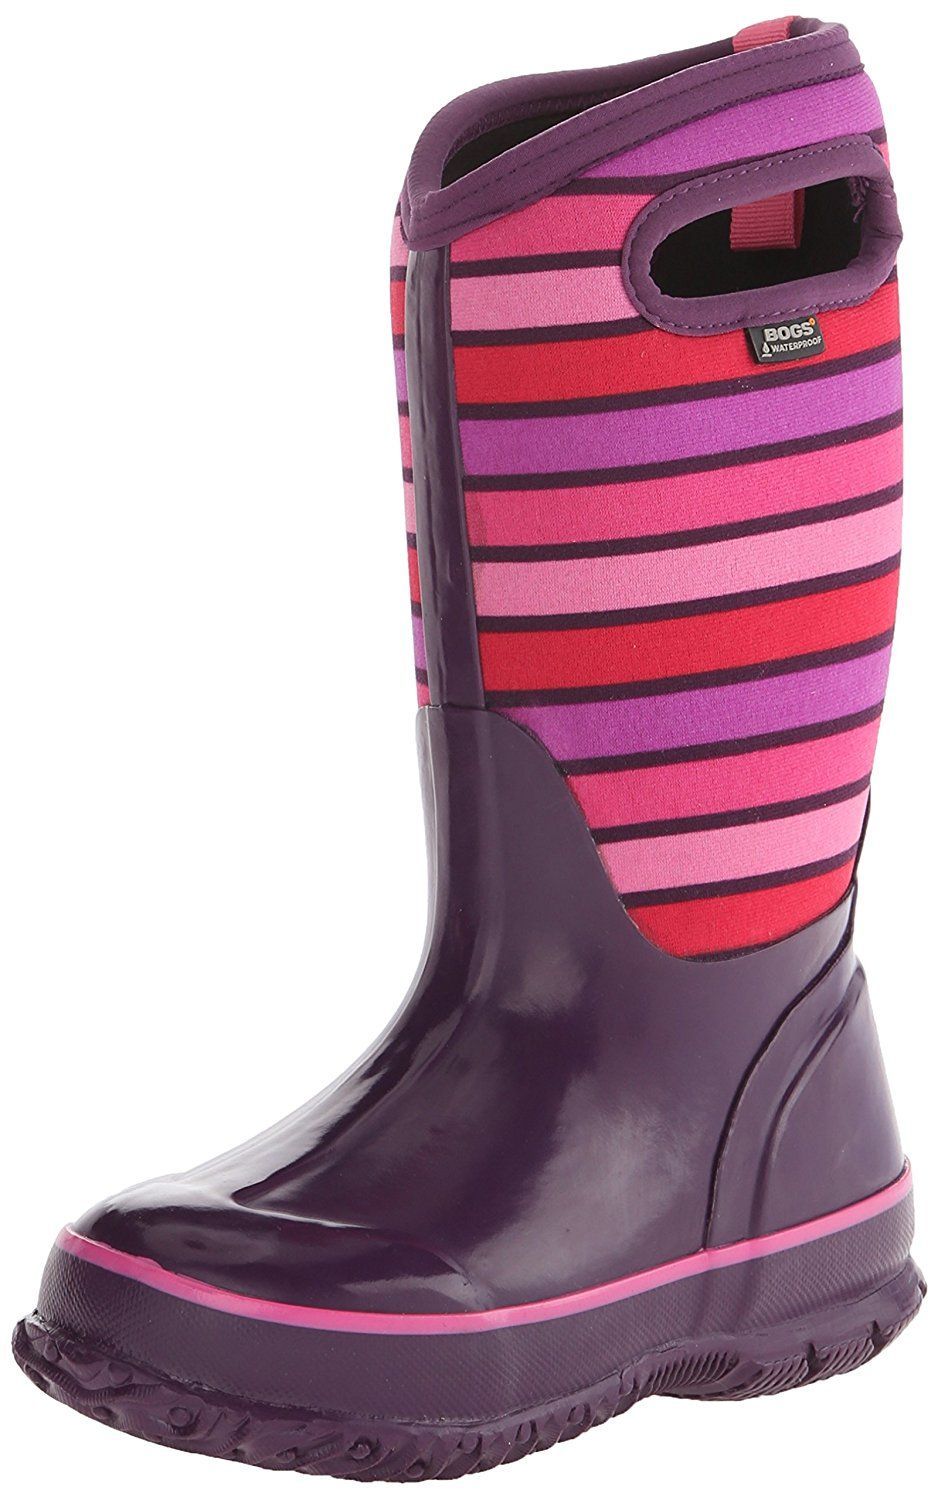 Bogs Kids Classic Stripes Winter Snow Boot Don T Get Left Behind See This Great Boots Girl S Boots Boots Spring Boots Rain Boots